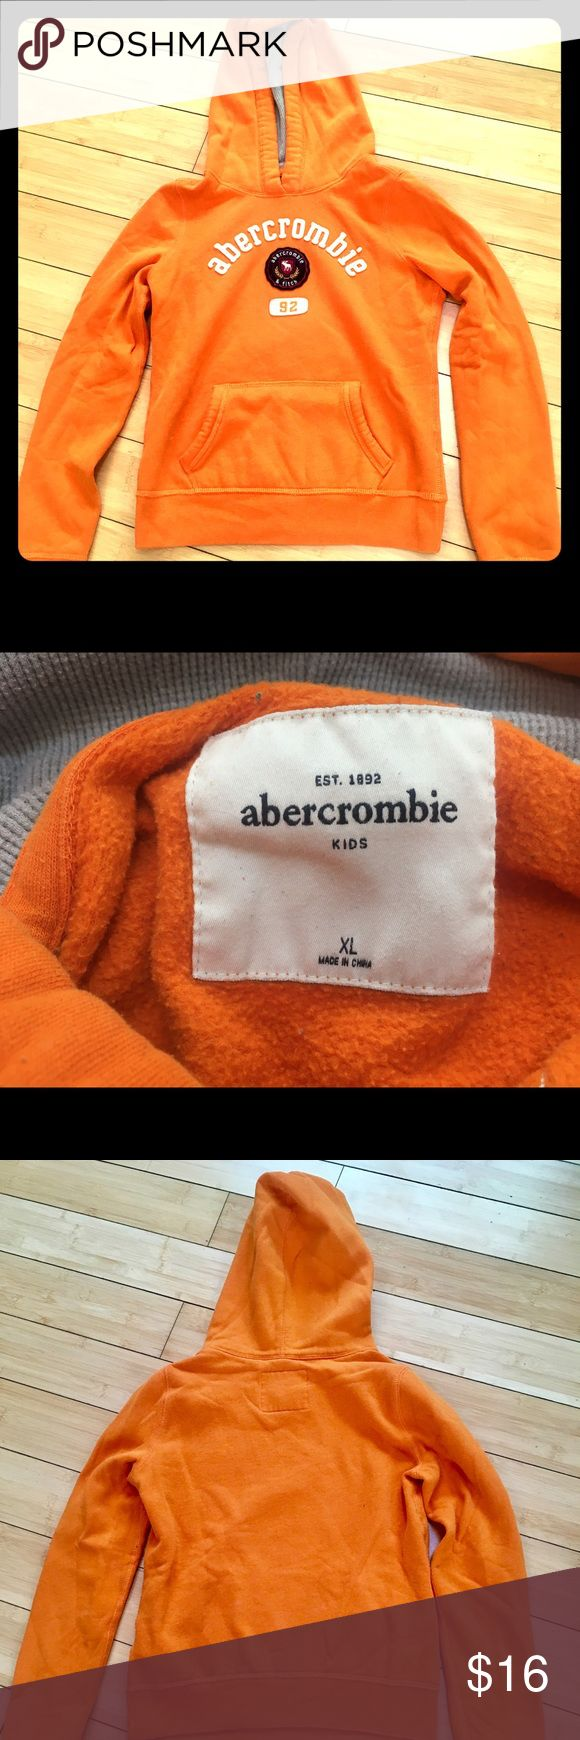 Abercrombie Girls Hoodie Girls xl Abercrombie hooded sweatshirt. abercrombie kids Shirts & Tops Sweatshirts & Hoodies